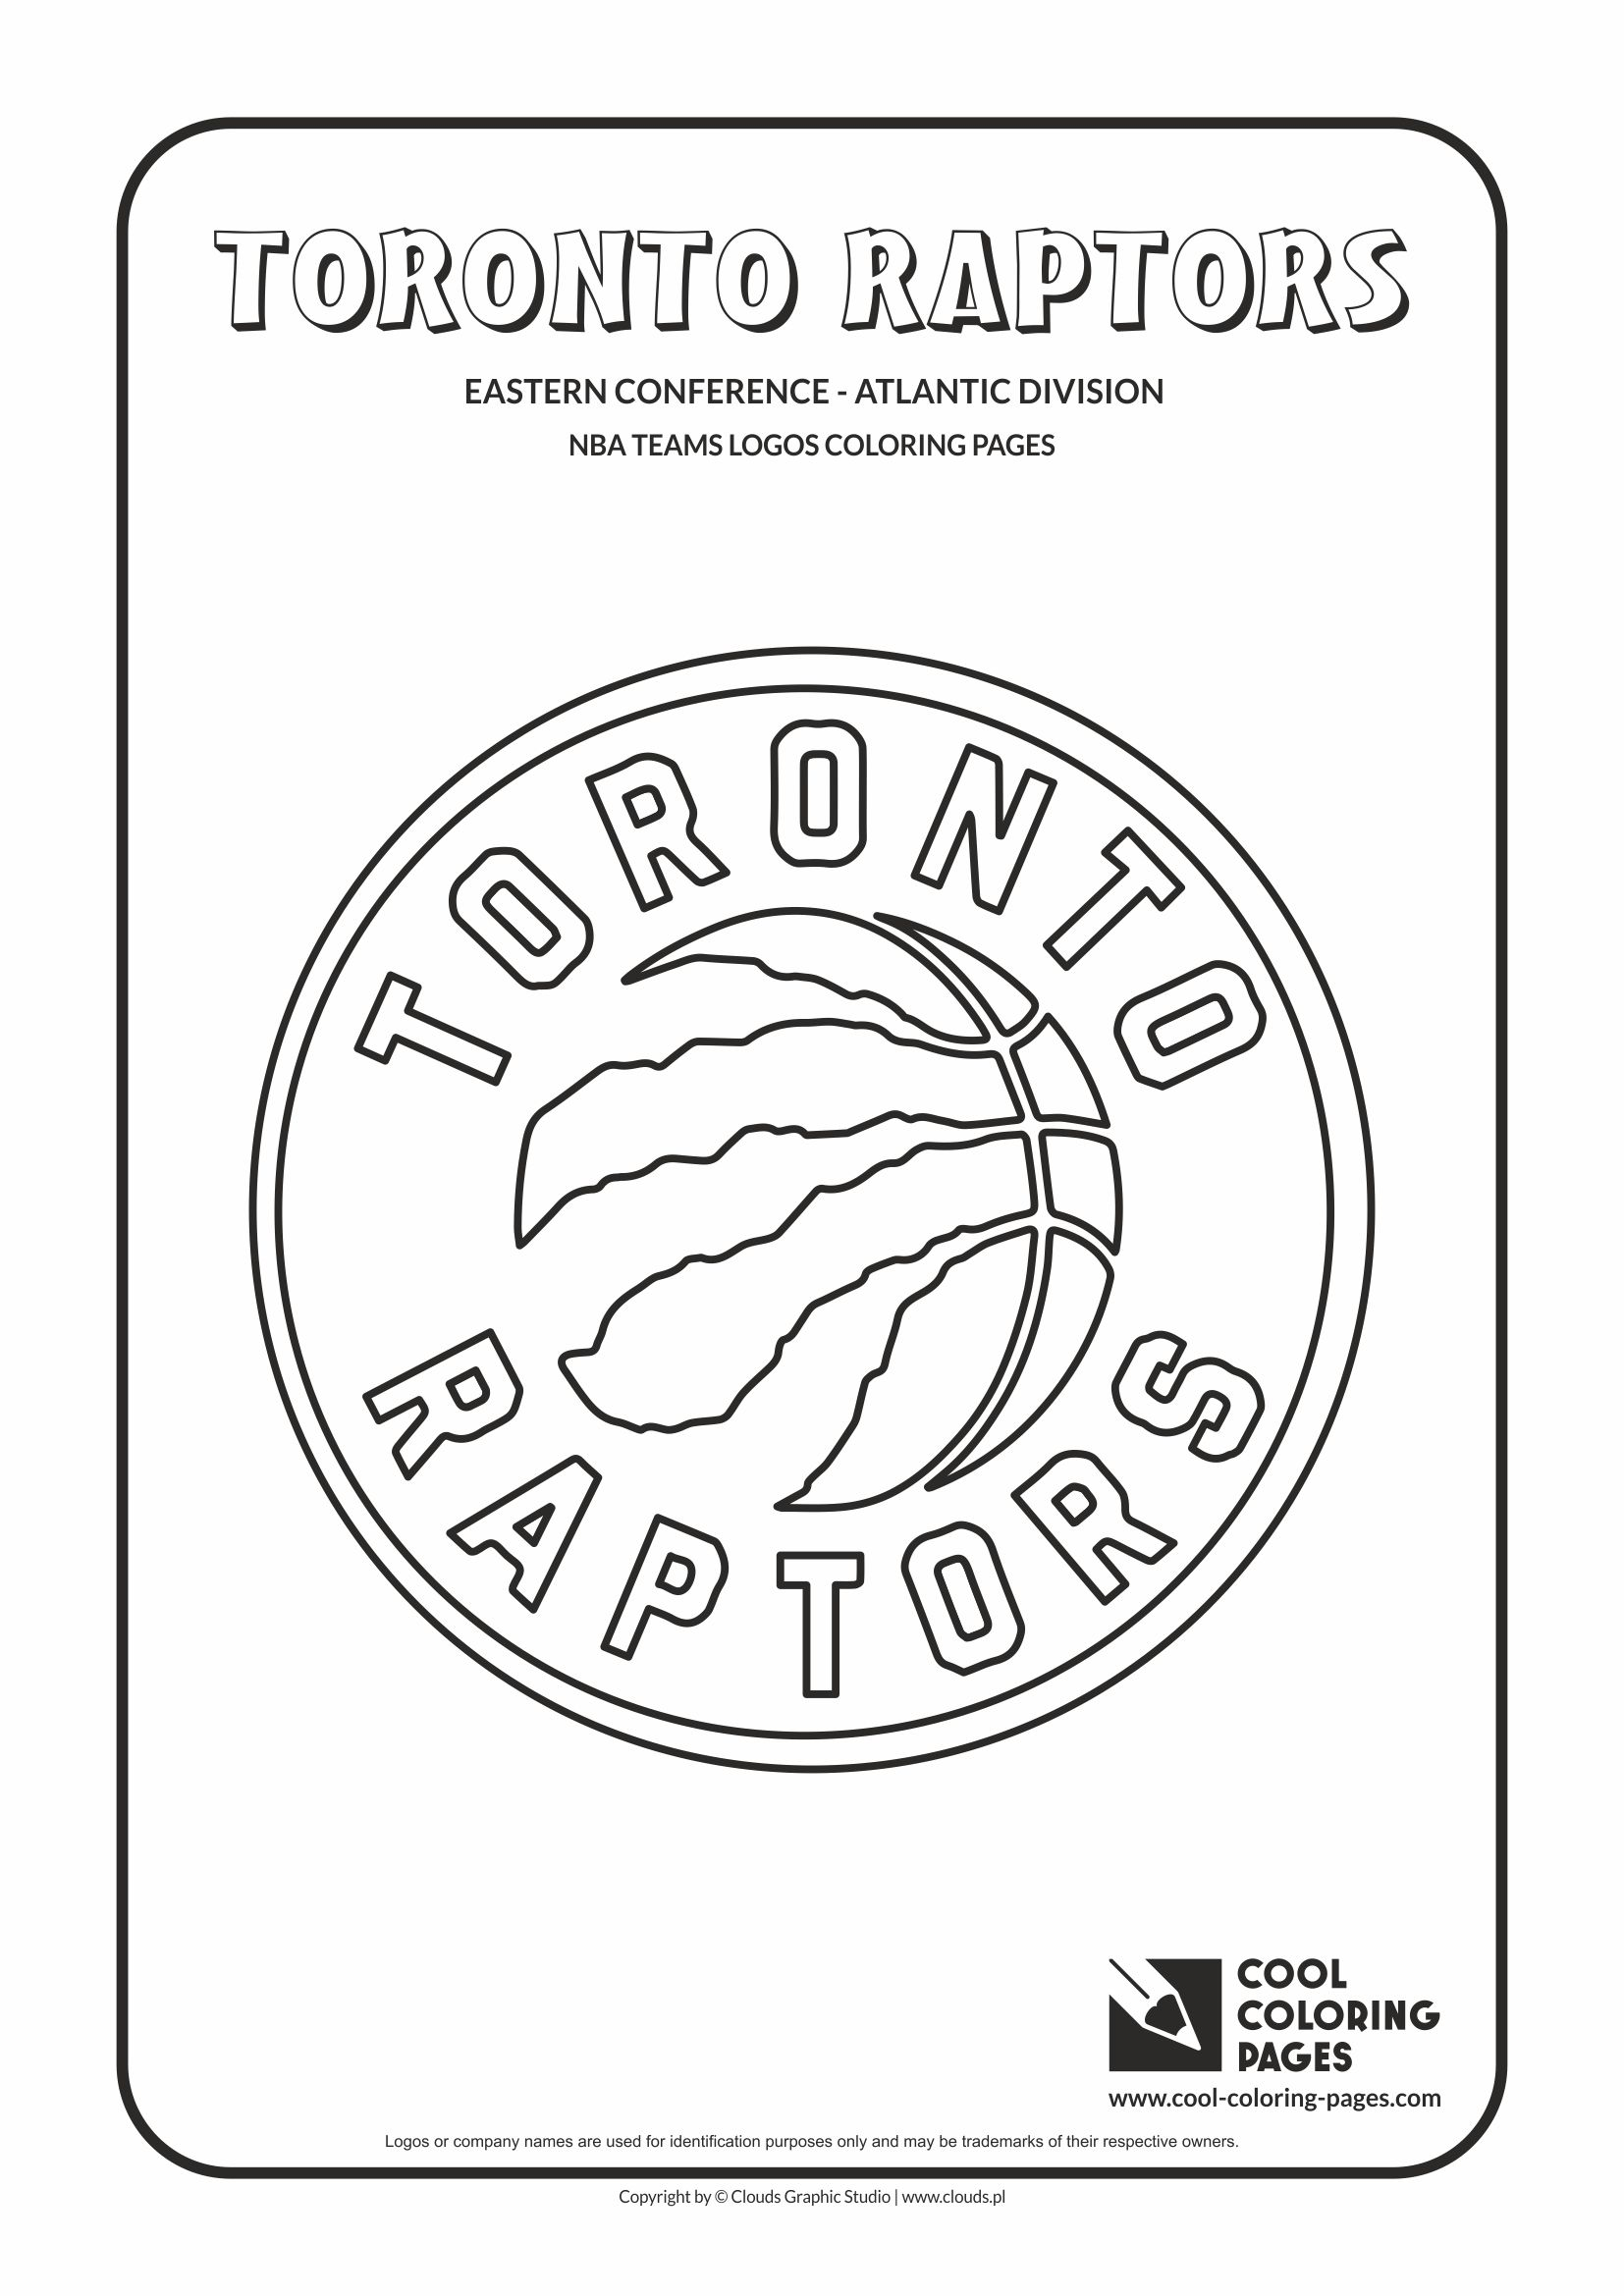 toronto raptors coloring pages - cool coloring pages nba teams logos coloring pages cool